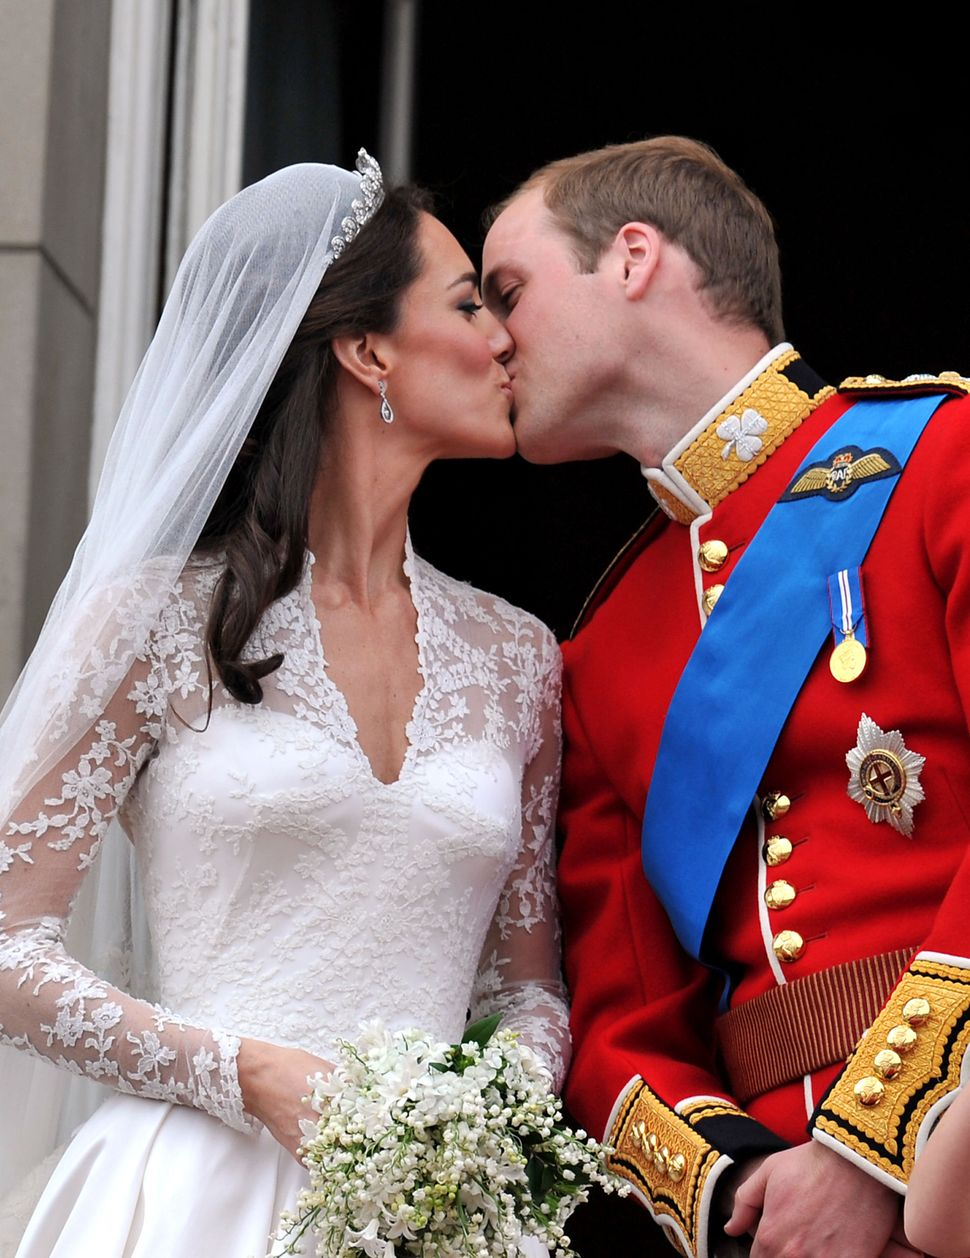 <strong>The&nbsp;wedding of Prince William and Catherine Middleton&nbsp;took place on 29 April 2011</strong>